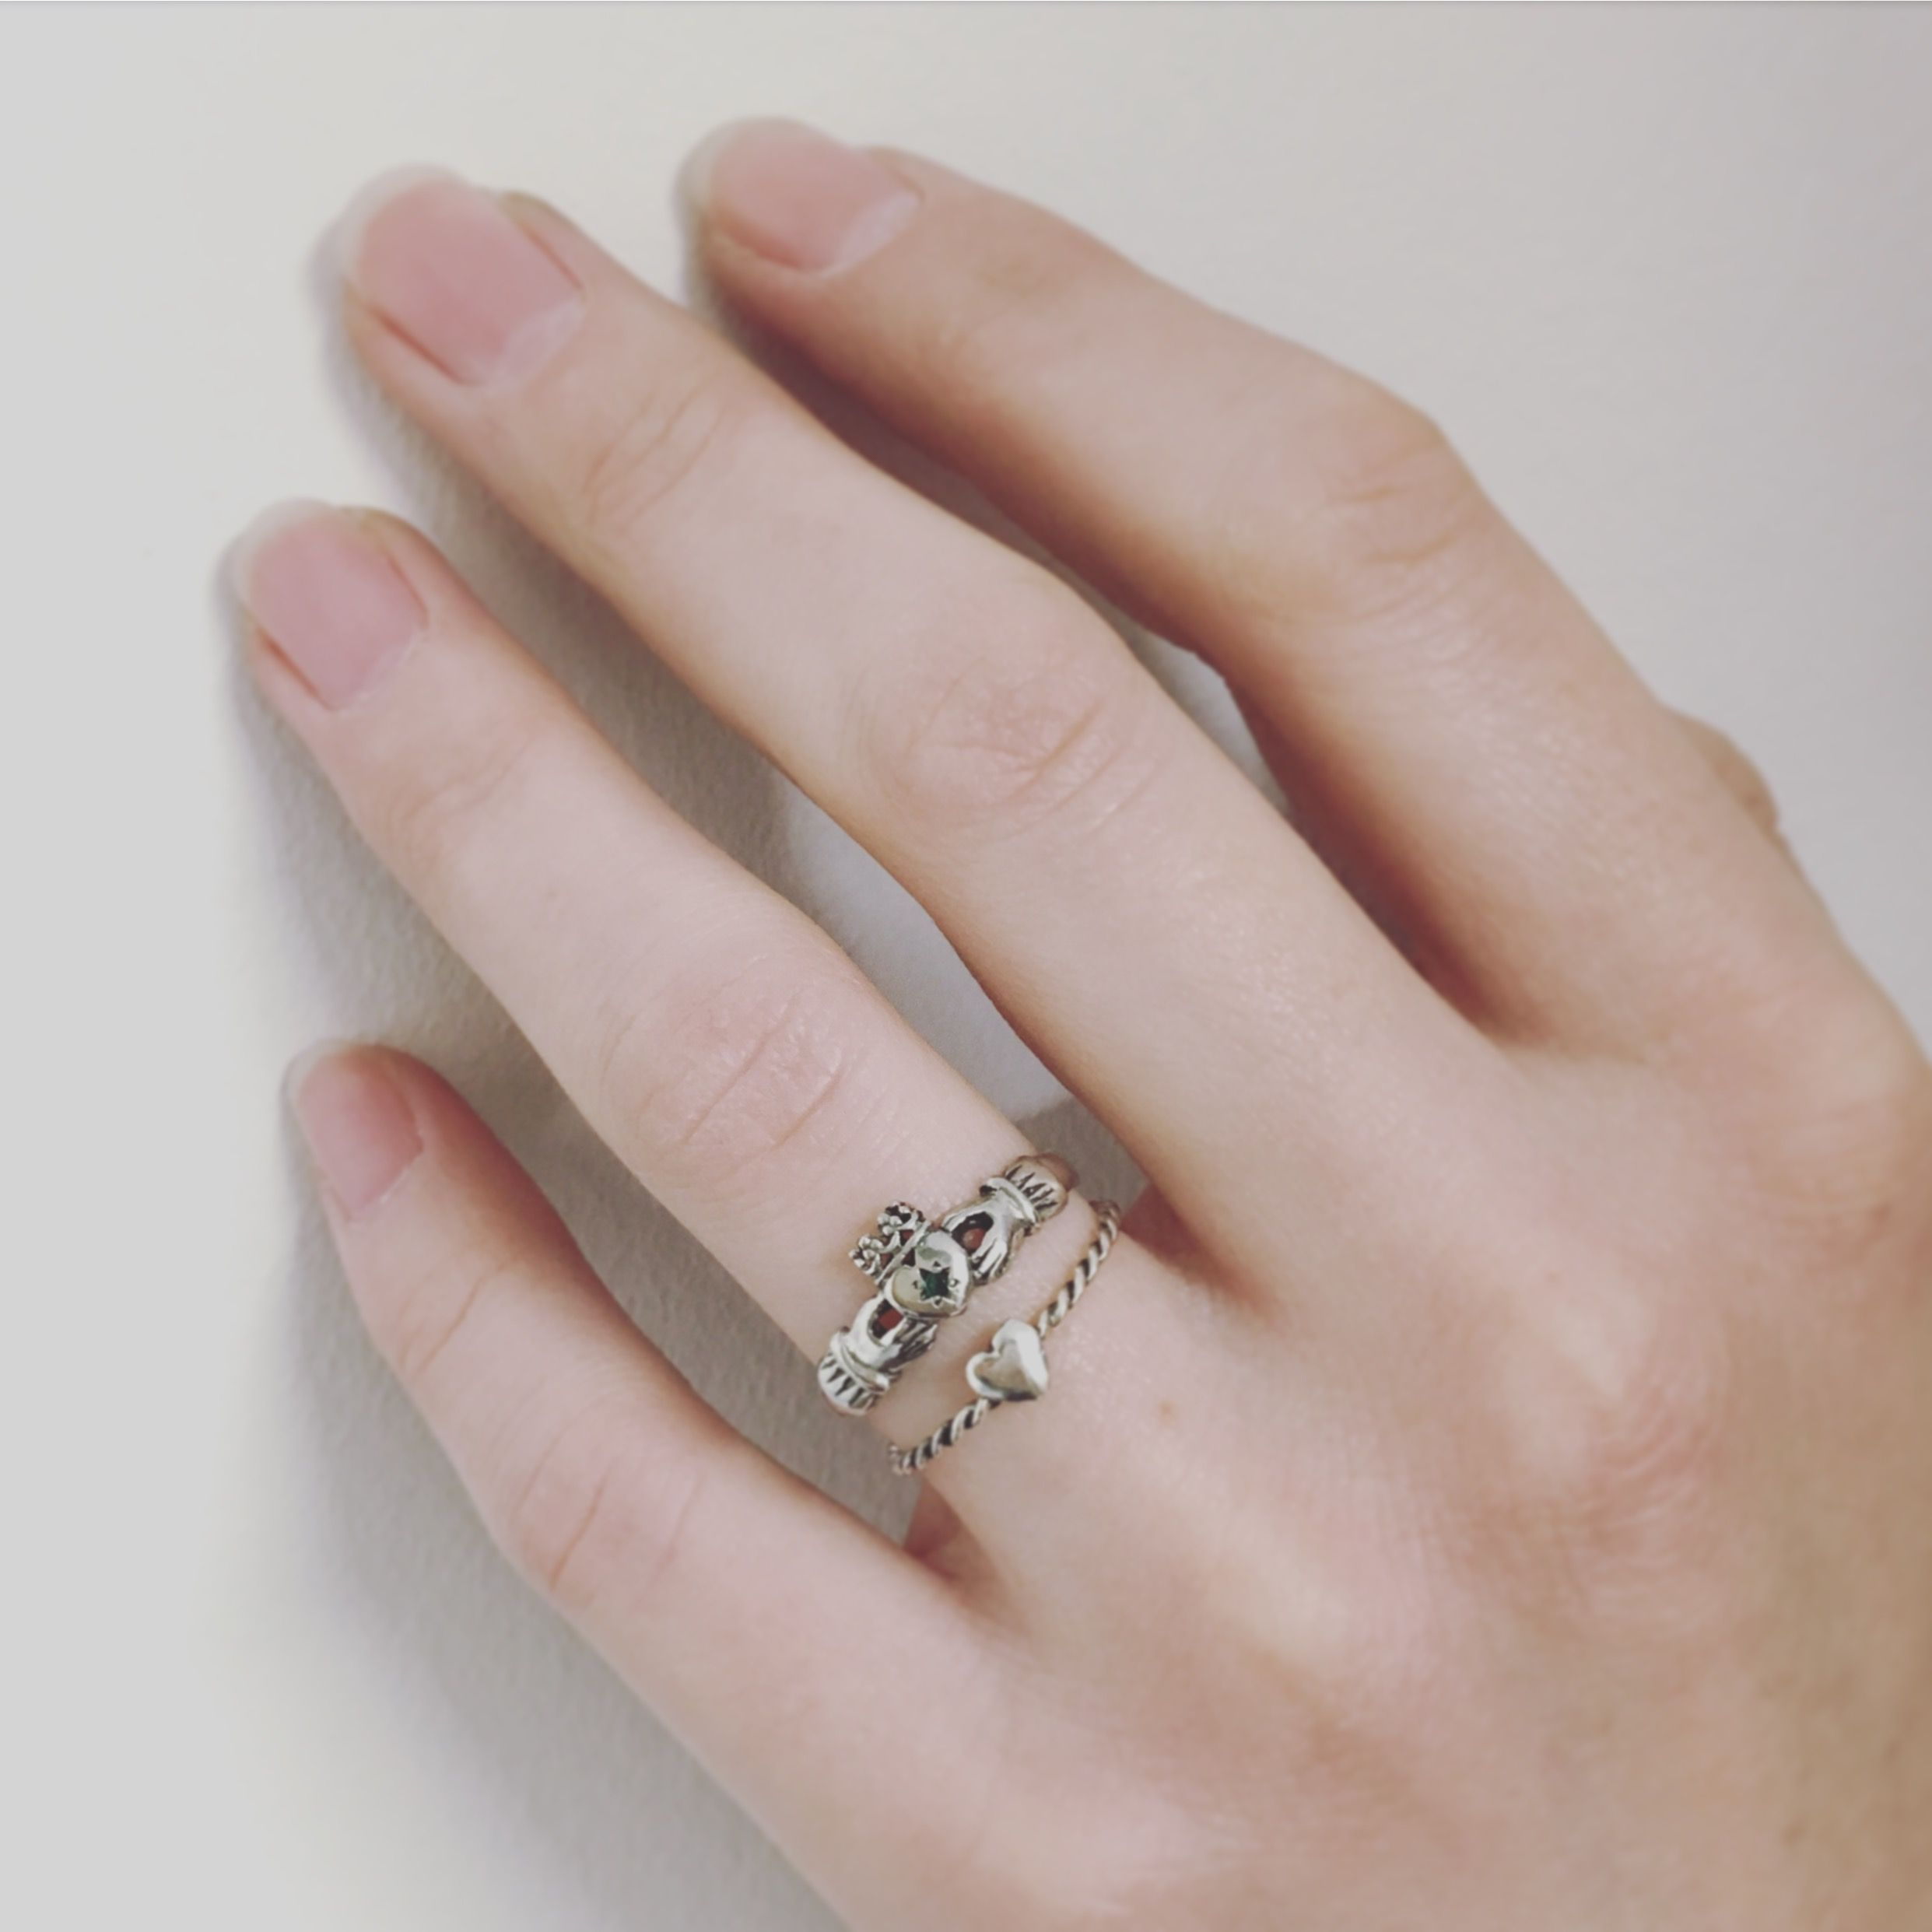 Tiny heart & Claddagh ring with tiny little emerald